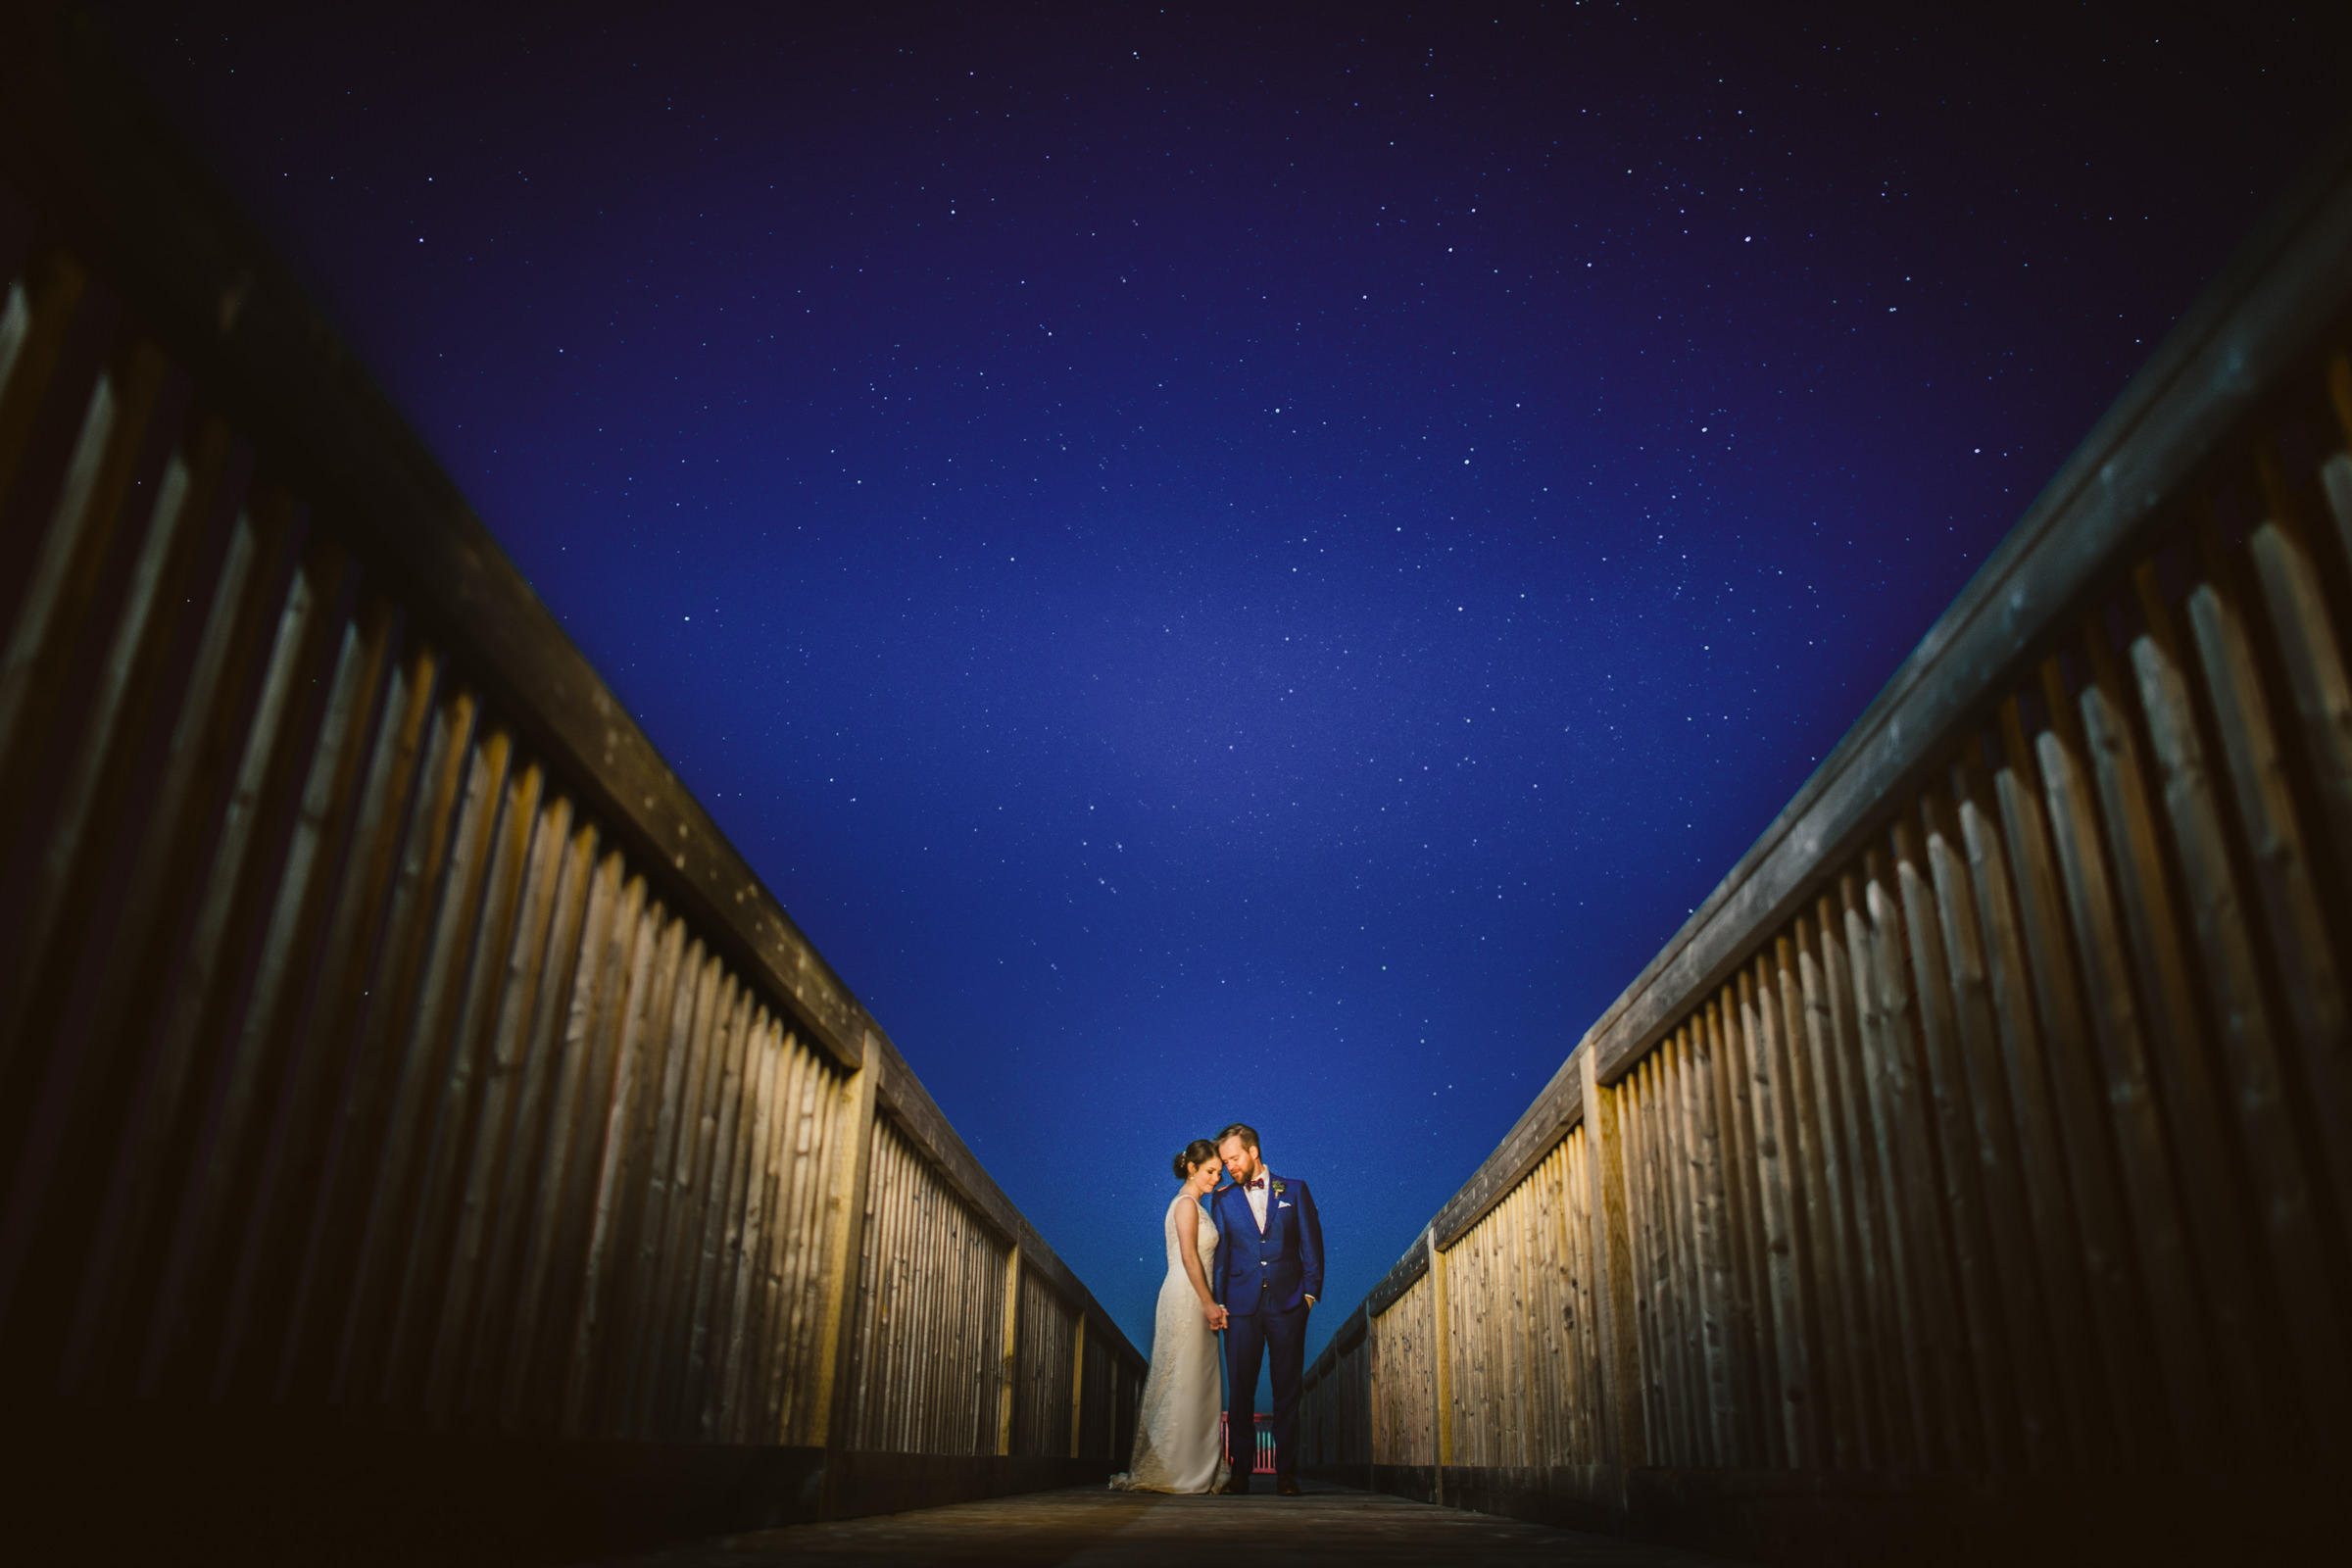 Couple under stars on wooden bridge - photo by Sam Hurd - DC